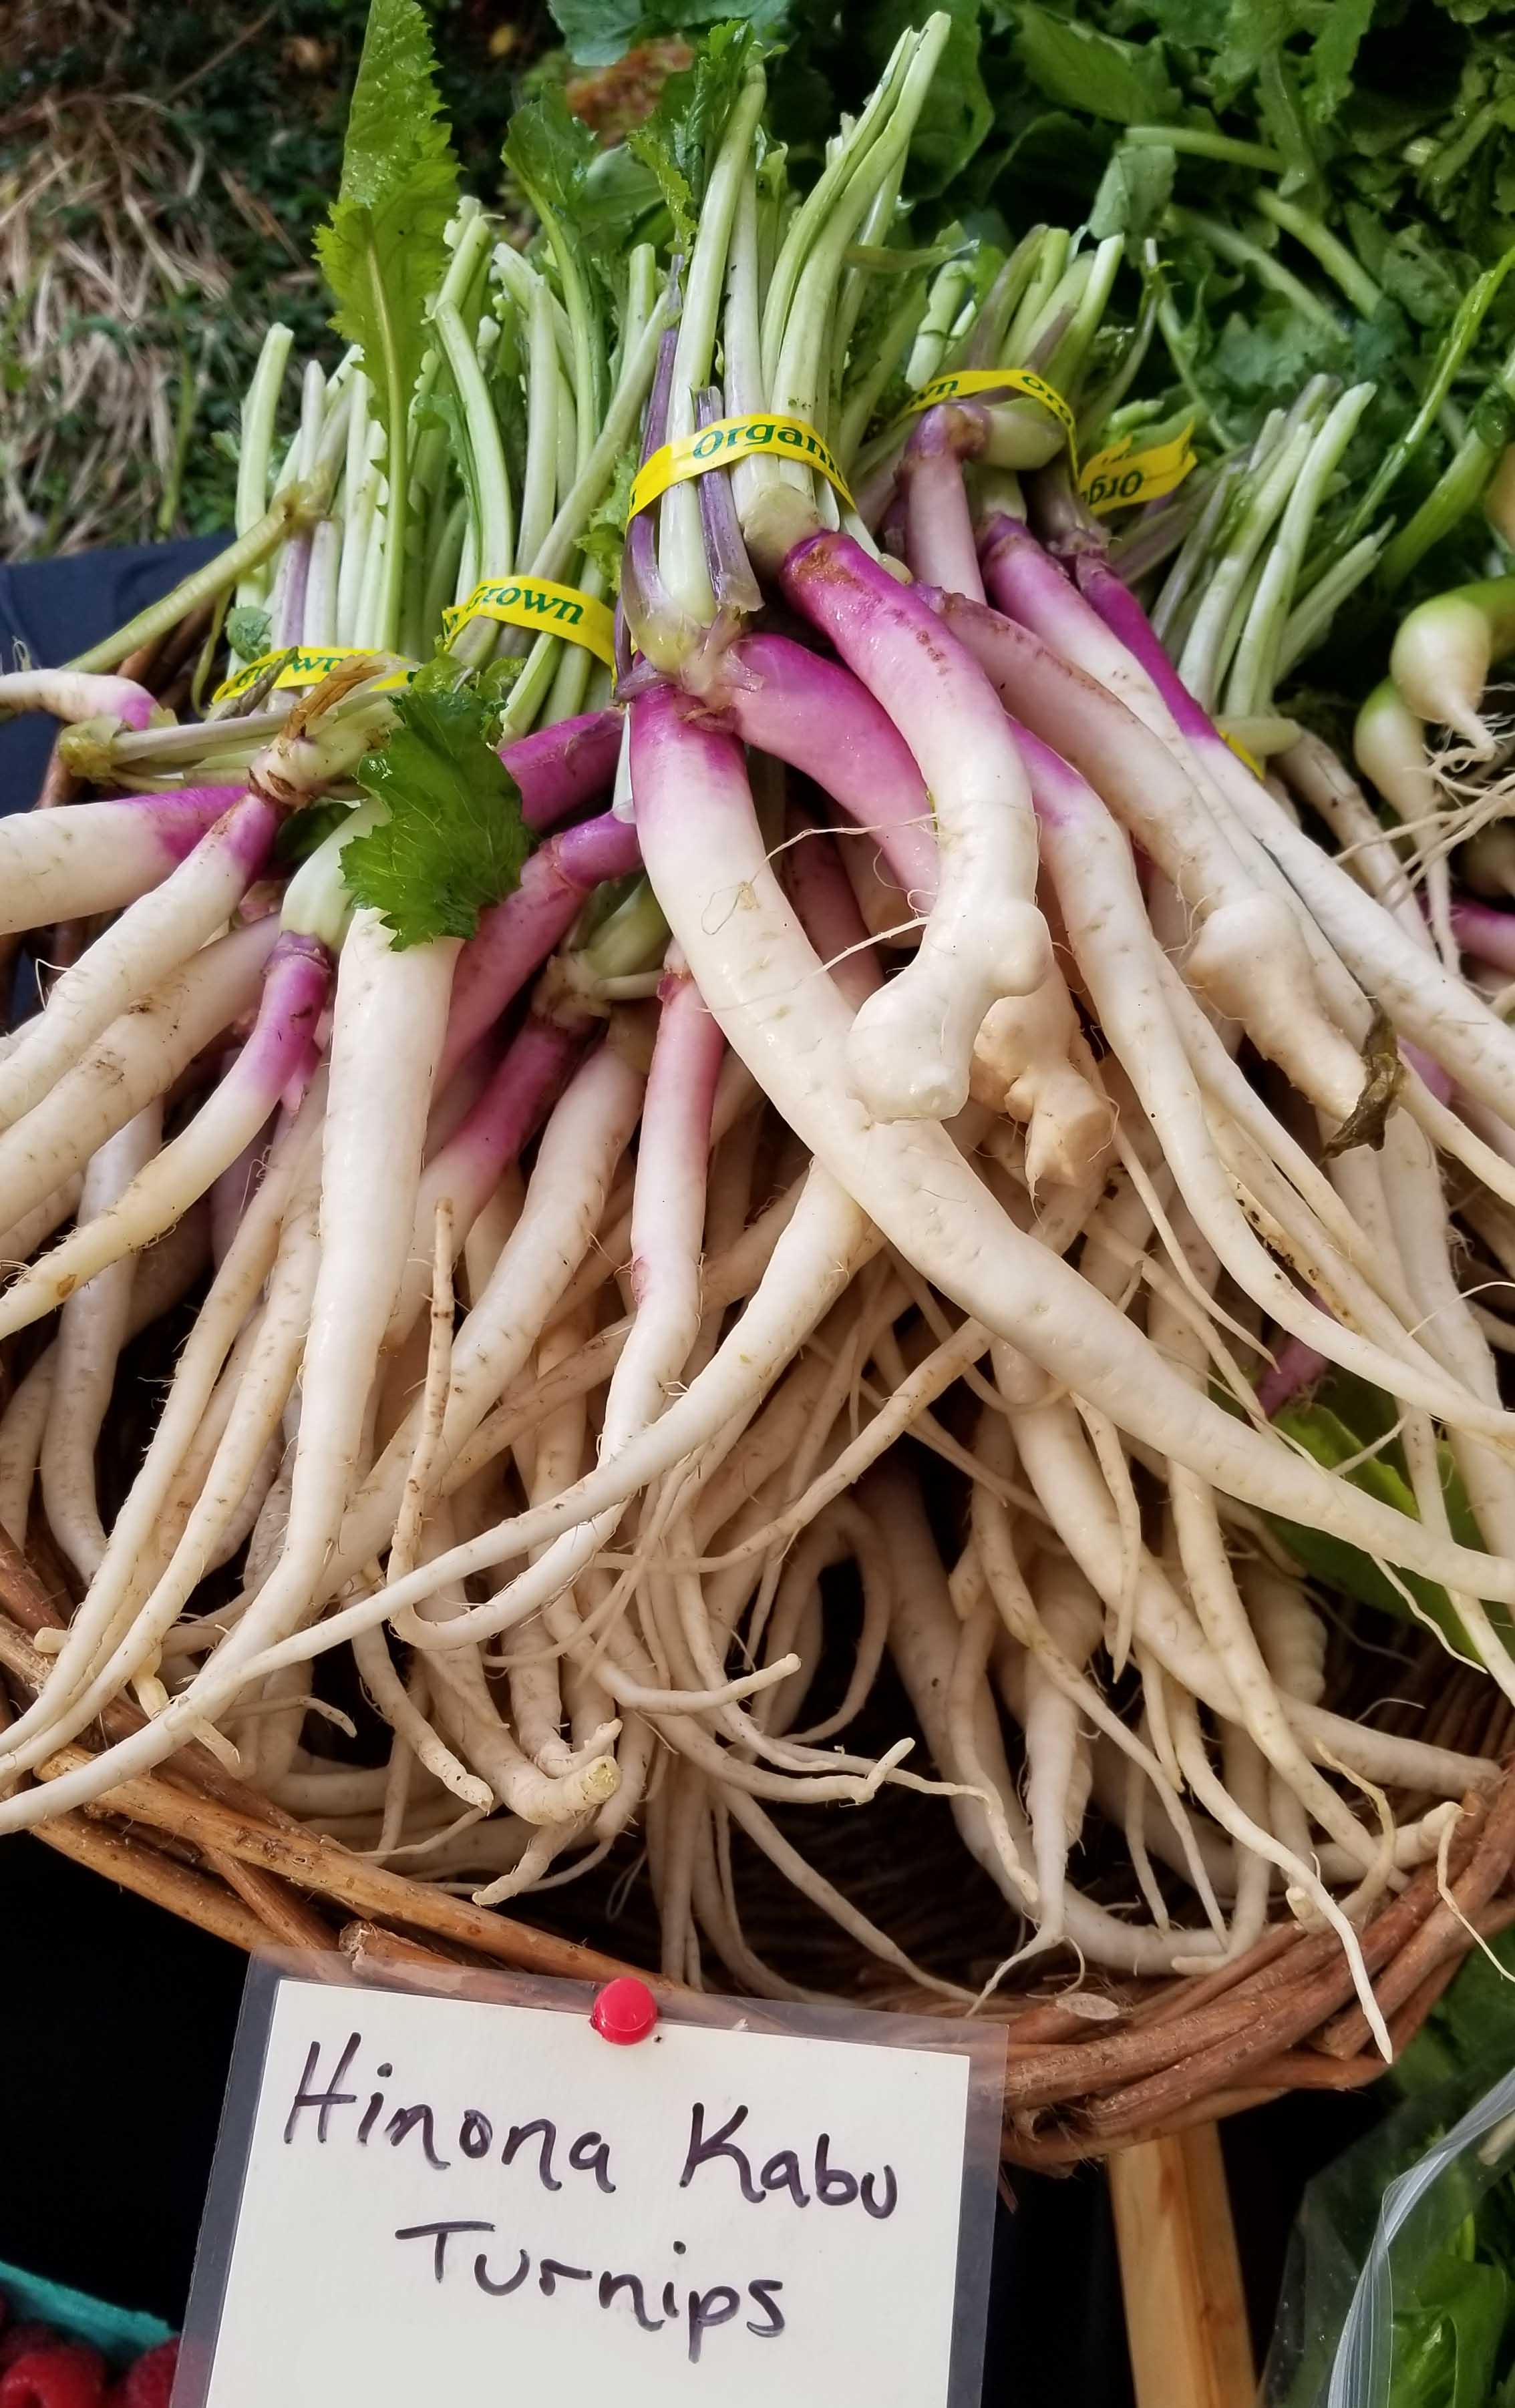 Organic grown hinona kabu turnips